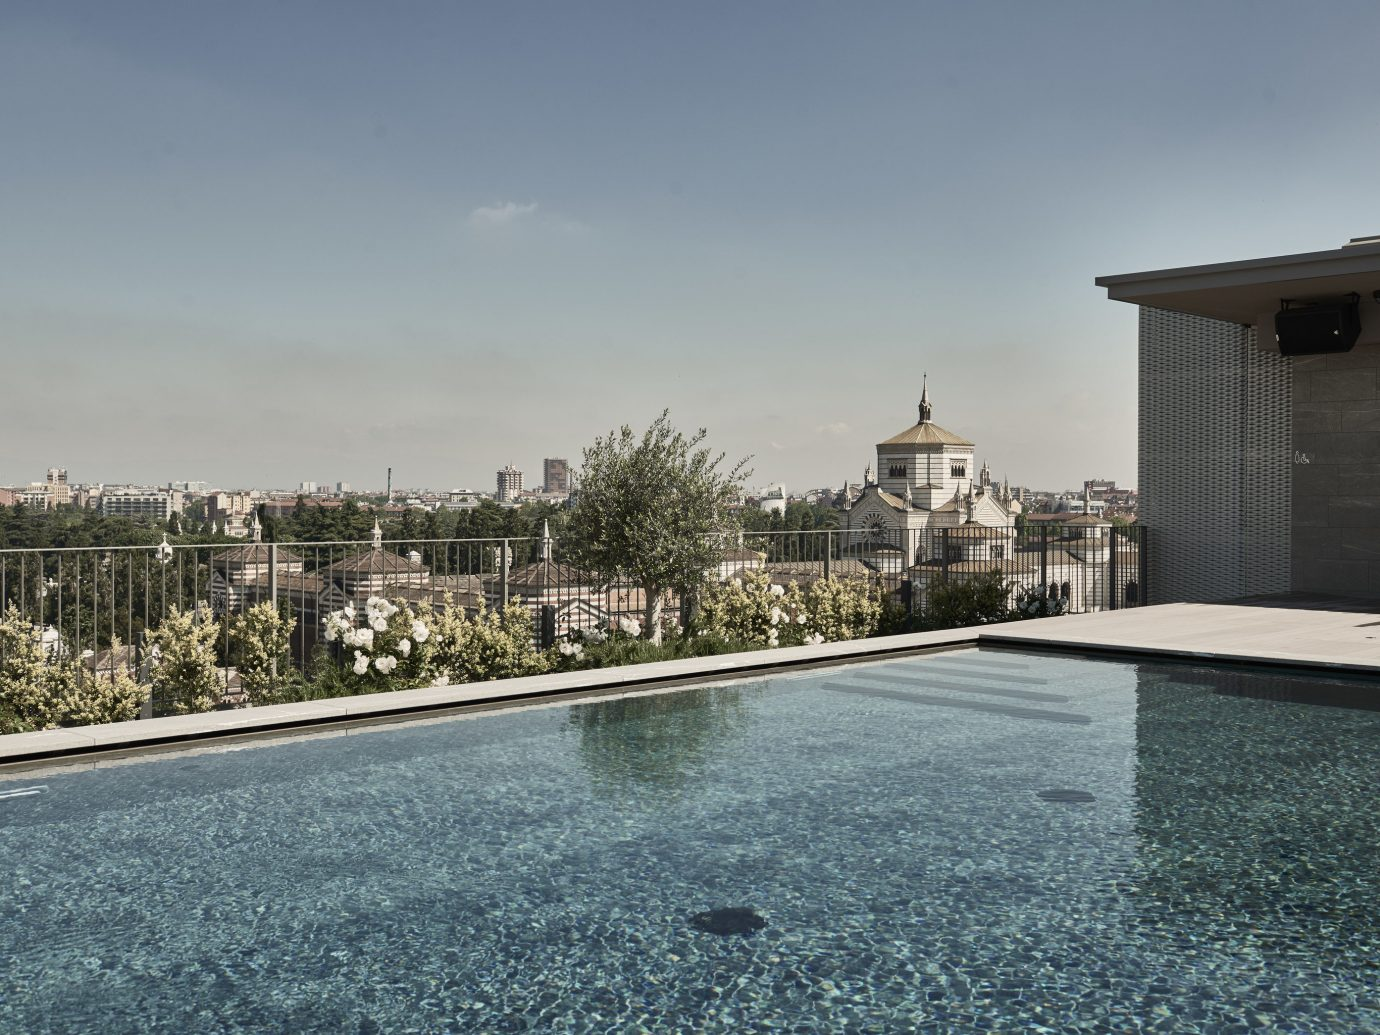 Hotels Italy Milan outdoor sky road water Architecture estate building residential area roof real estate City home tree condominium house window reflecting pool